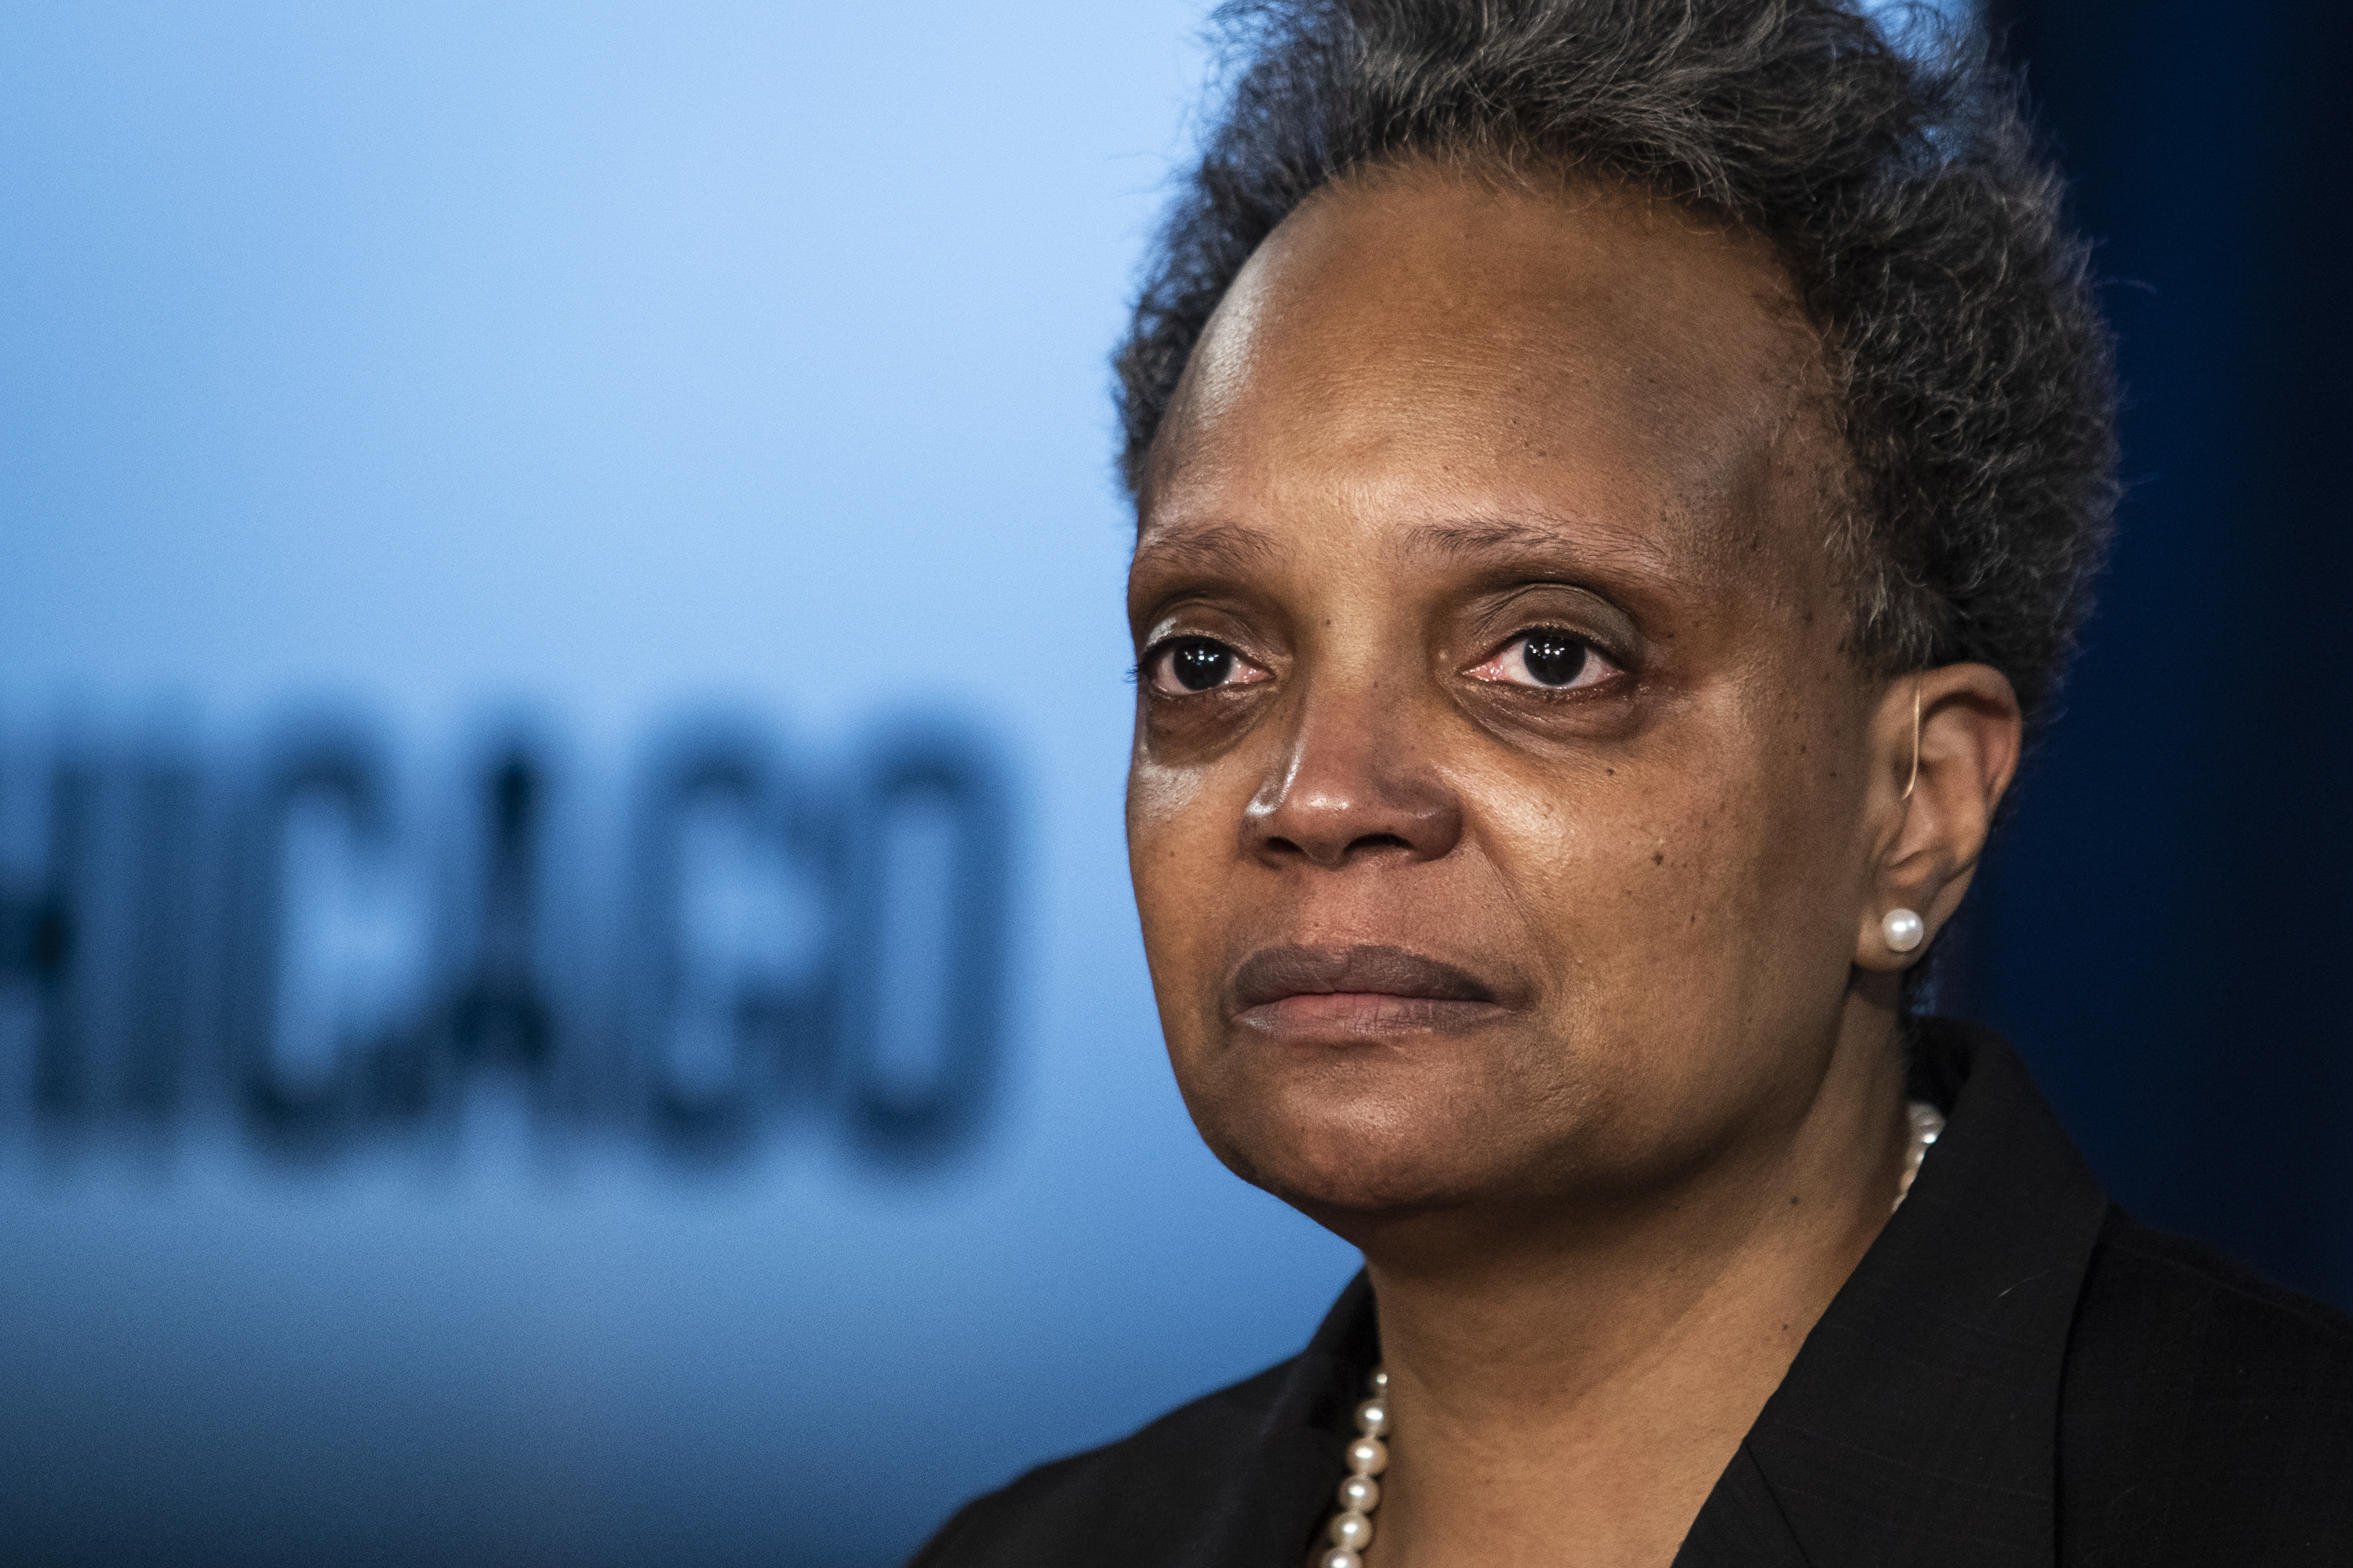 Mayor Lori Lightfoot discusses the videos of 13-year-old Adam Toledo, who was fatally shot by a Chicago police officer, during a news conference at City Hall, Thursday, April 15, 2021.